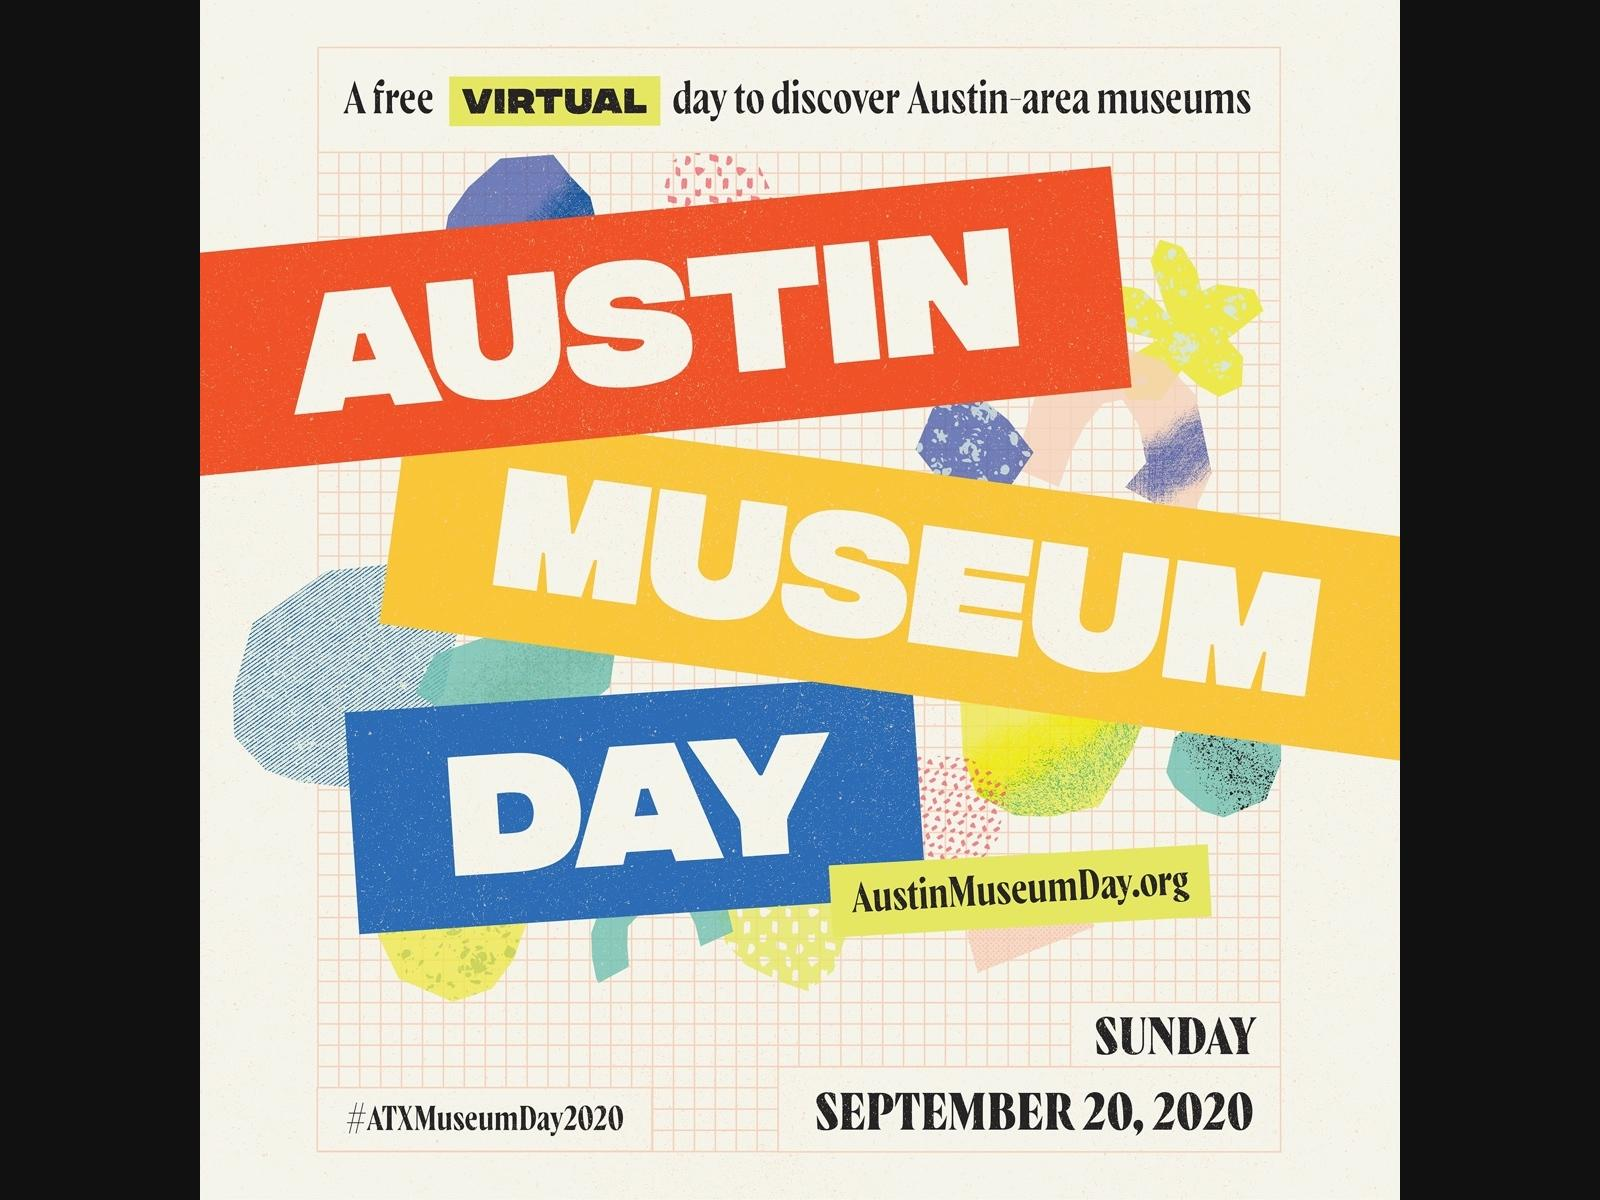 Austin Museum Day 2020, Sunday, Sept. 20 from 9 a.m. - 5 p.m.